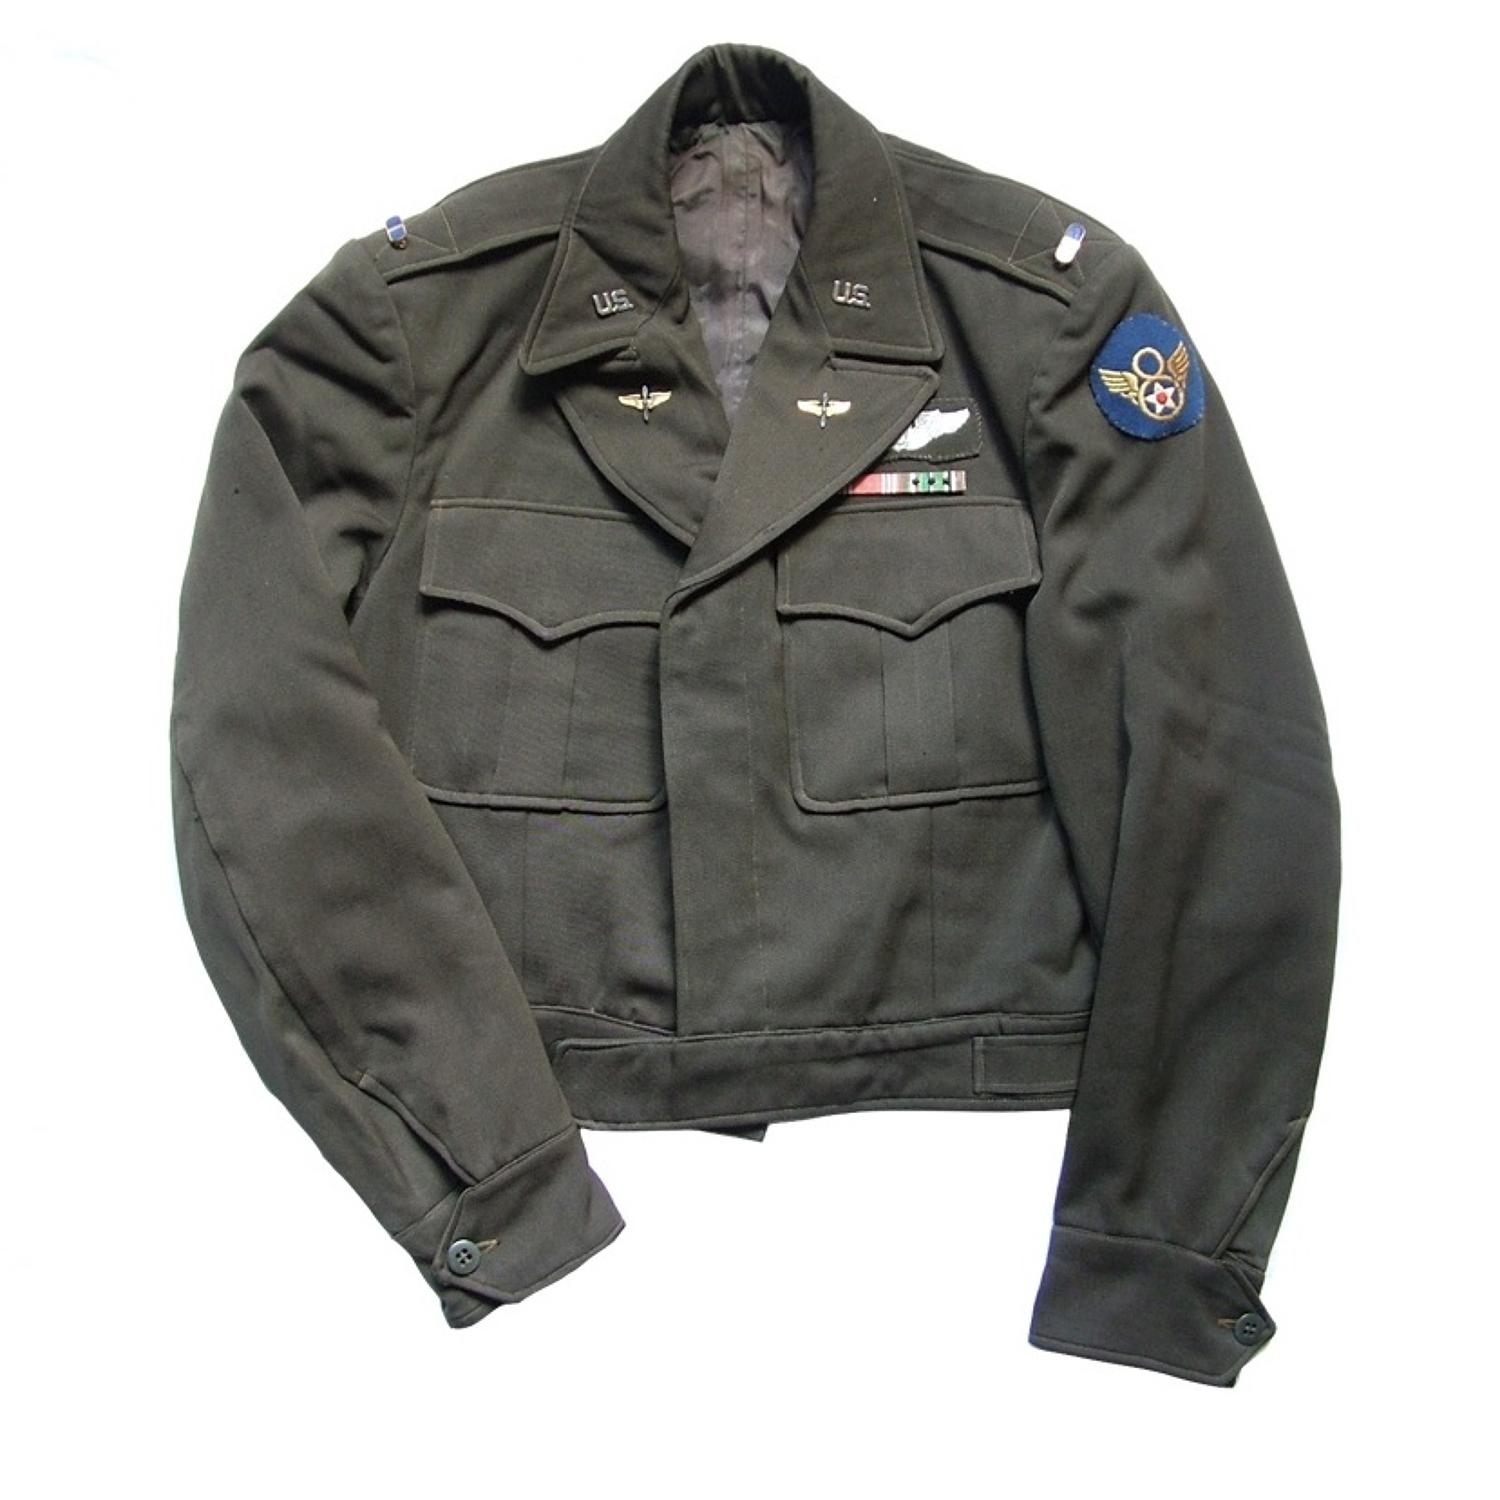 USAAF 8th AAF 'ike' jacket